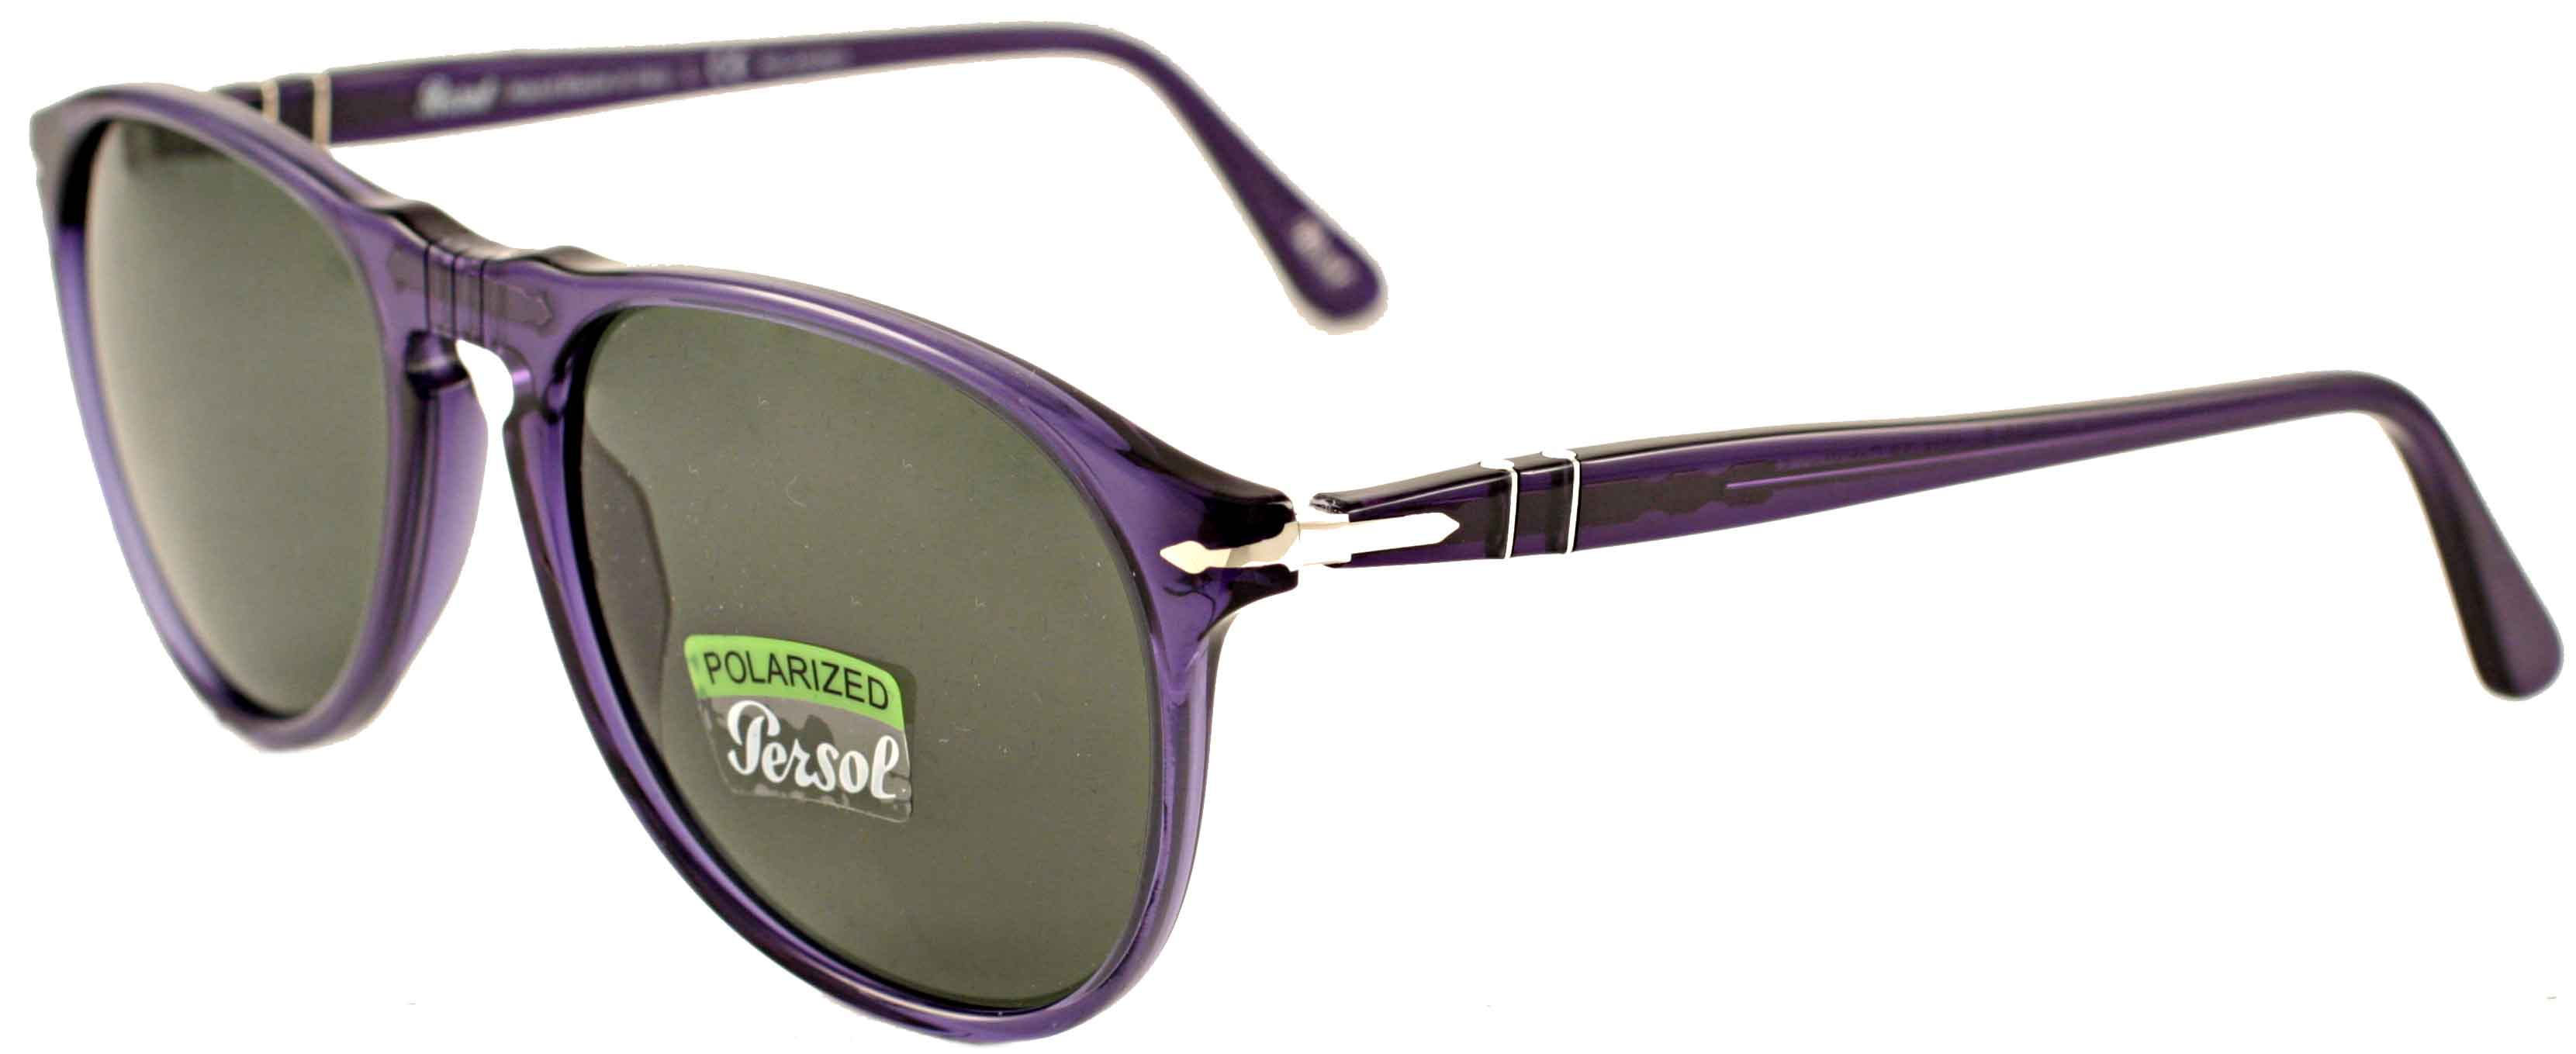 57f72c087c Eyewearbrands Have Collaborated With Persol